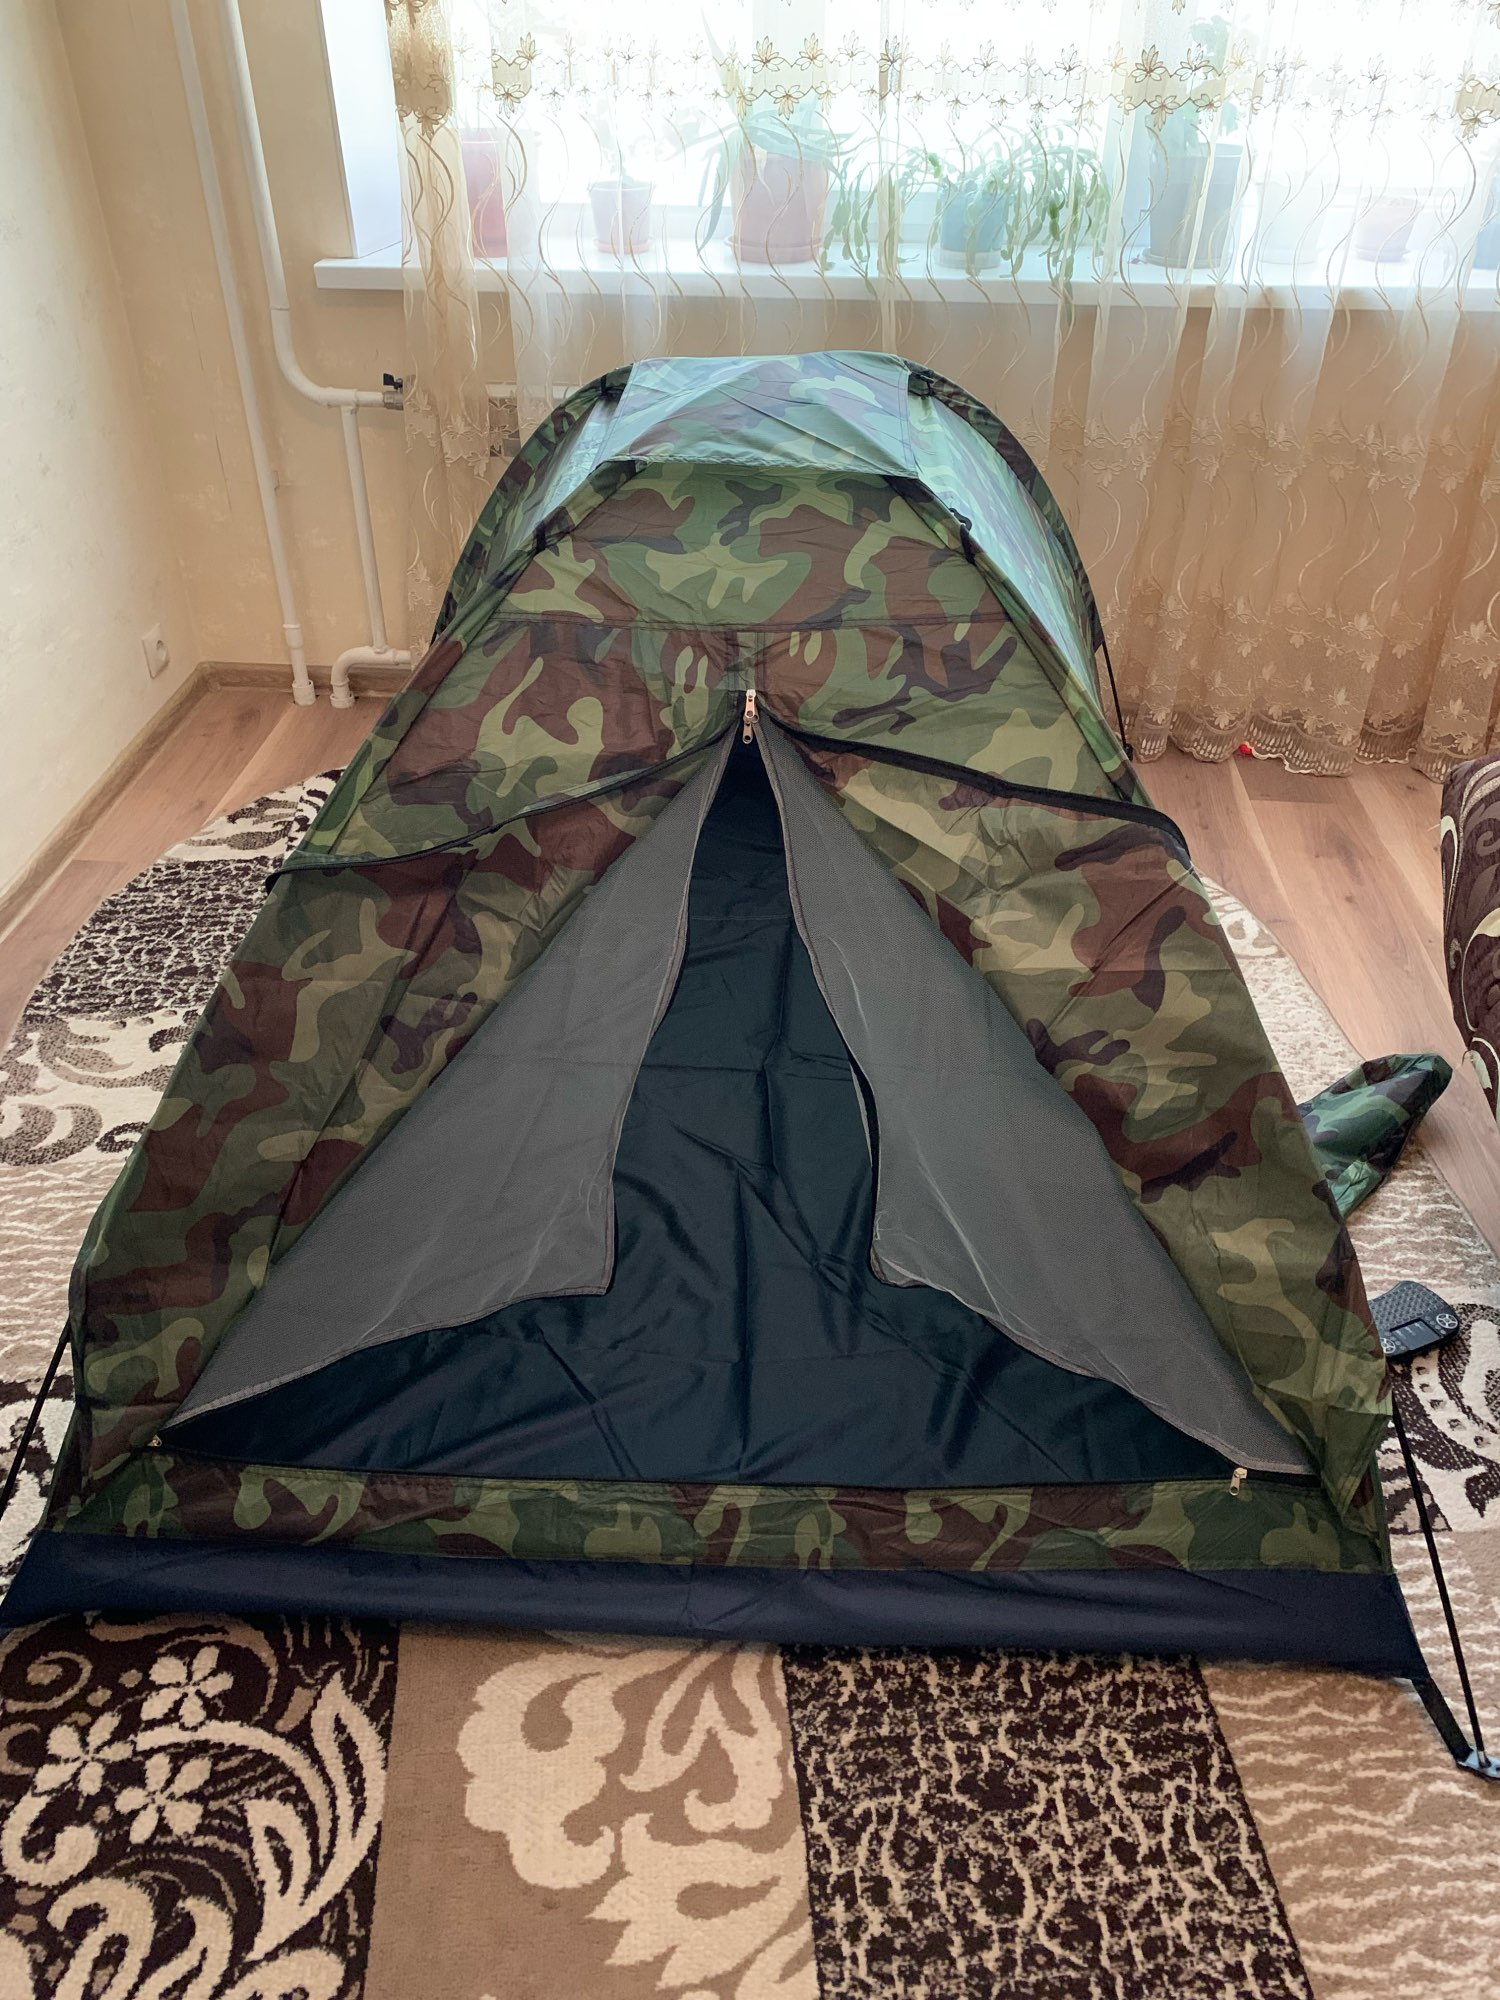 TOMSHOO 2 Person Tent Ultralight Single Layer Water Resistance Camping Tent PU1000mm with Carry Bag Hiking Traveling 3 Season